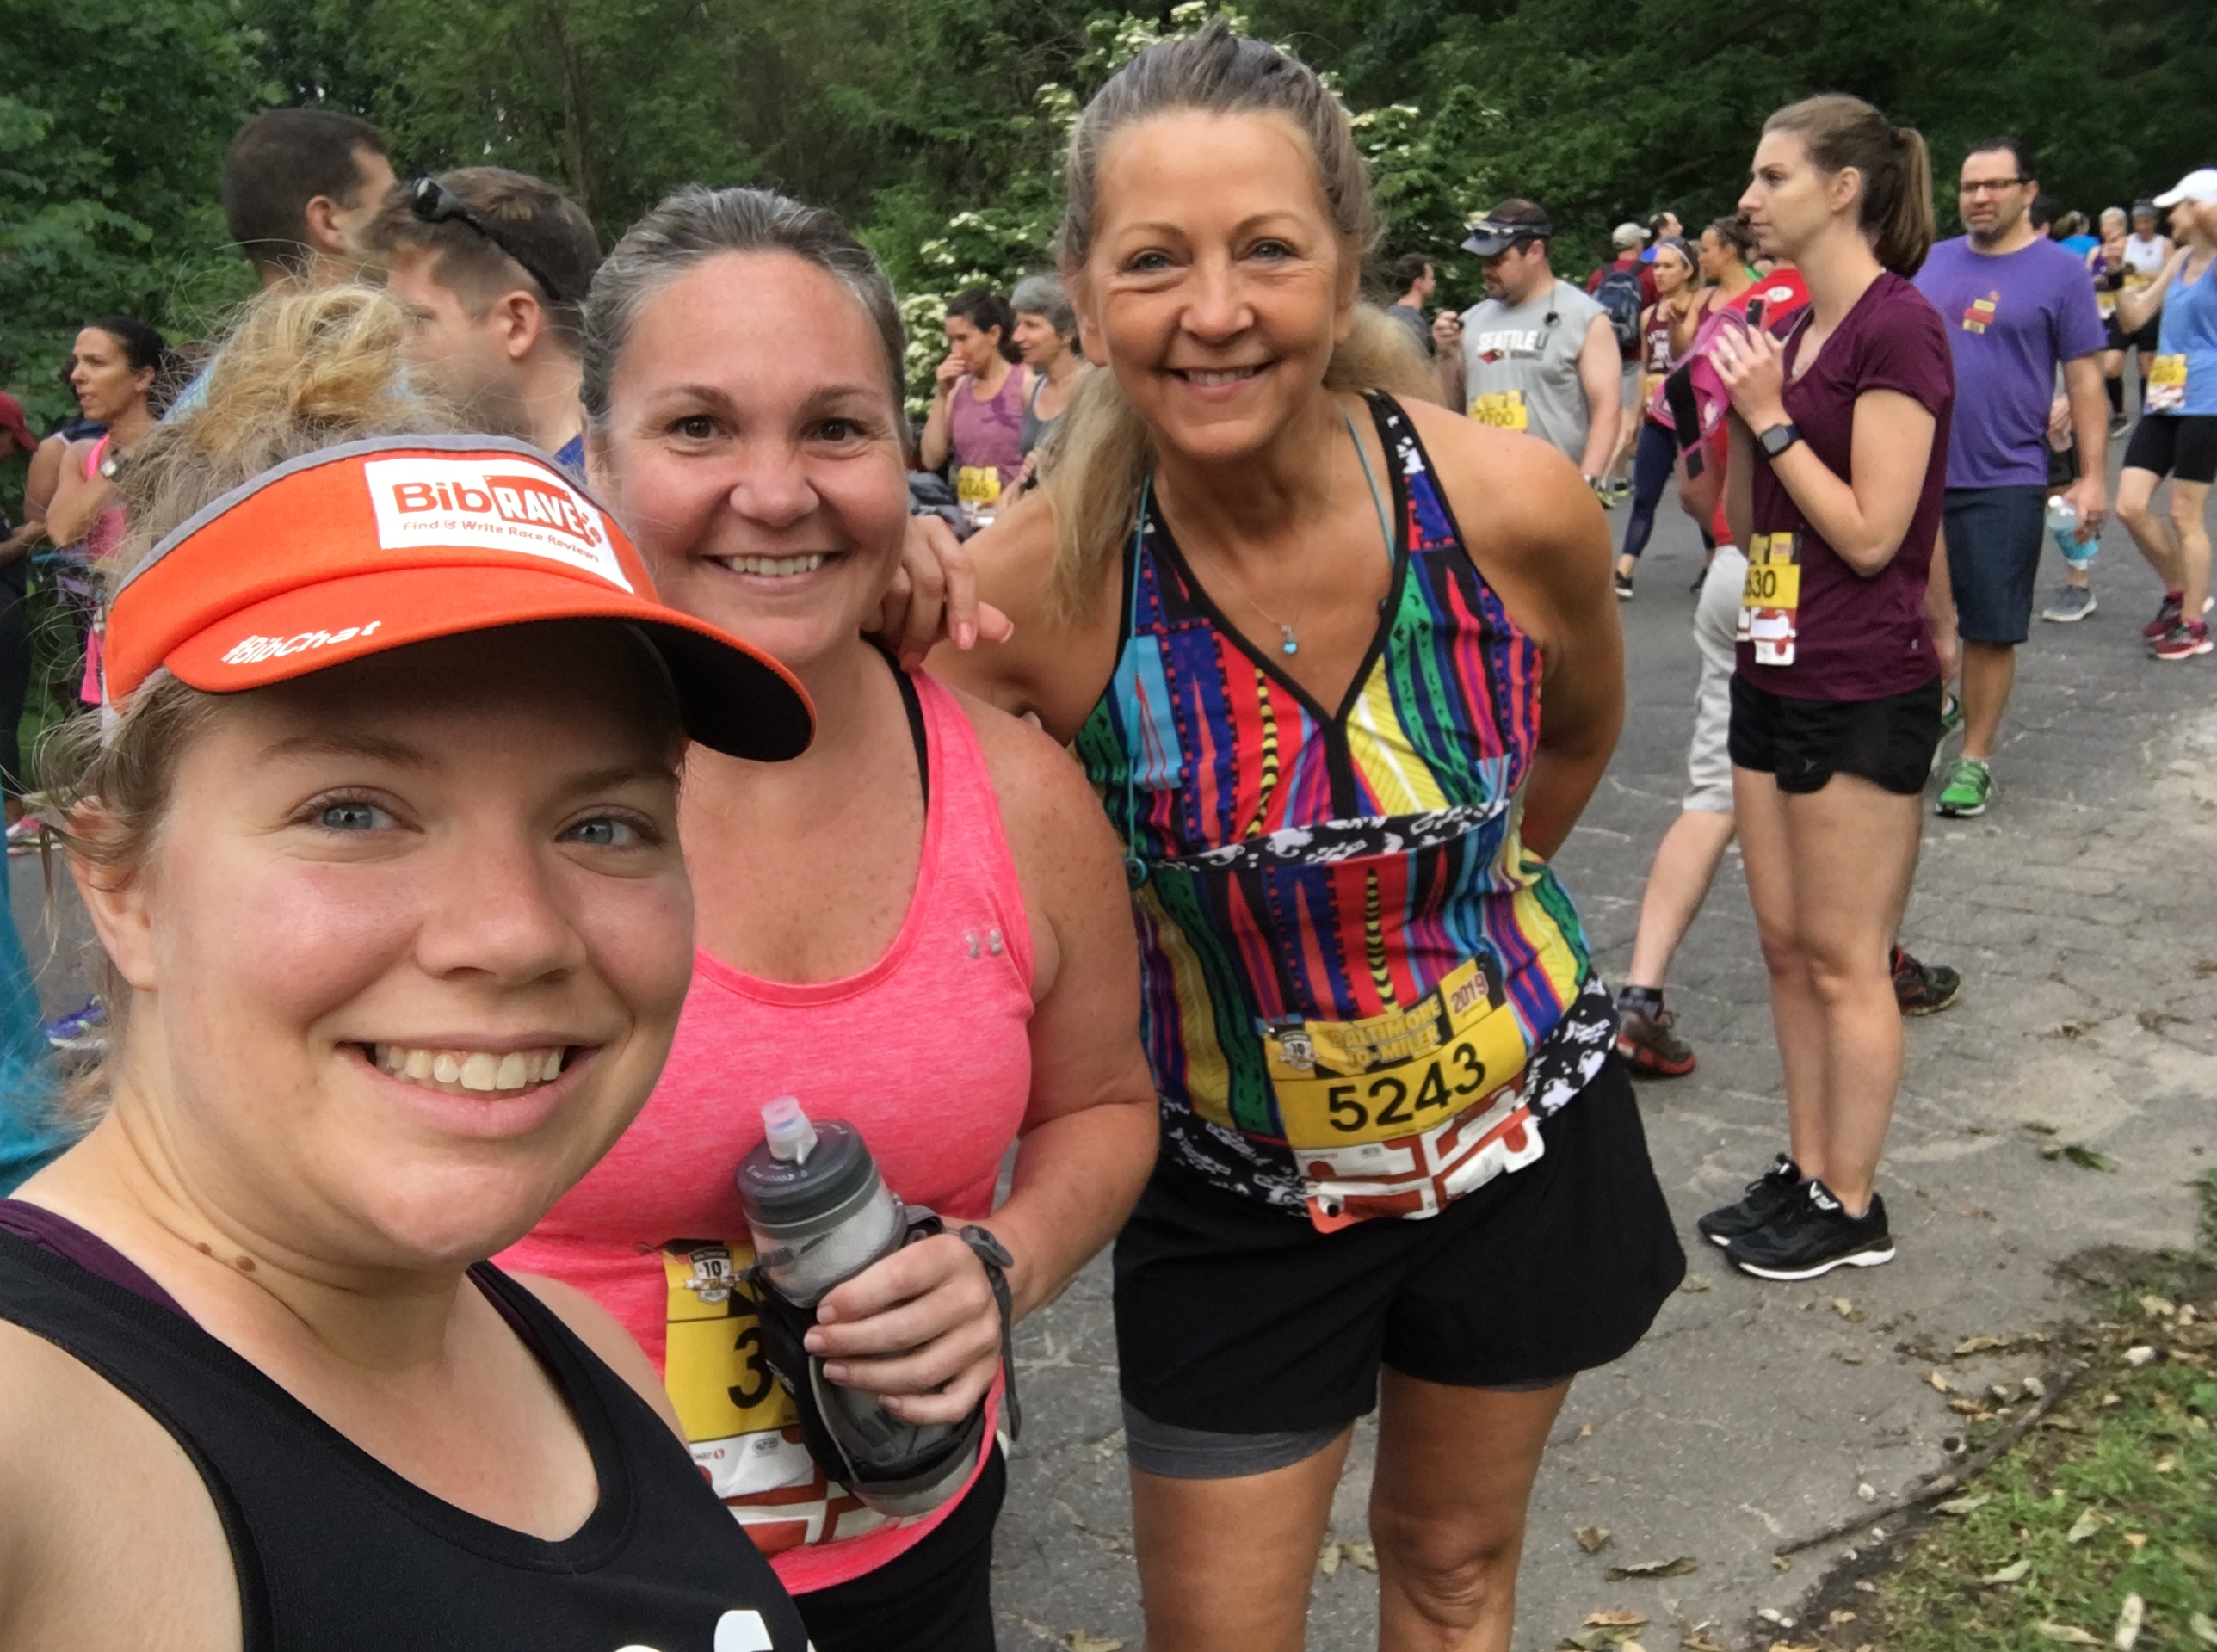 Vanessa, Valerie and Connie in a selfie before the race start.